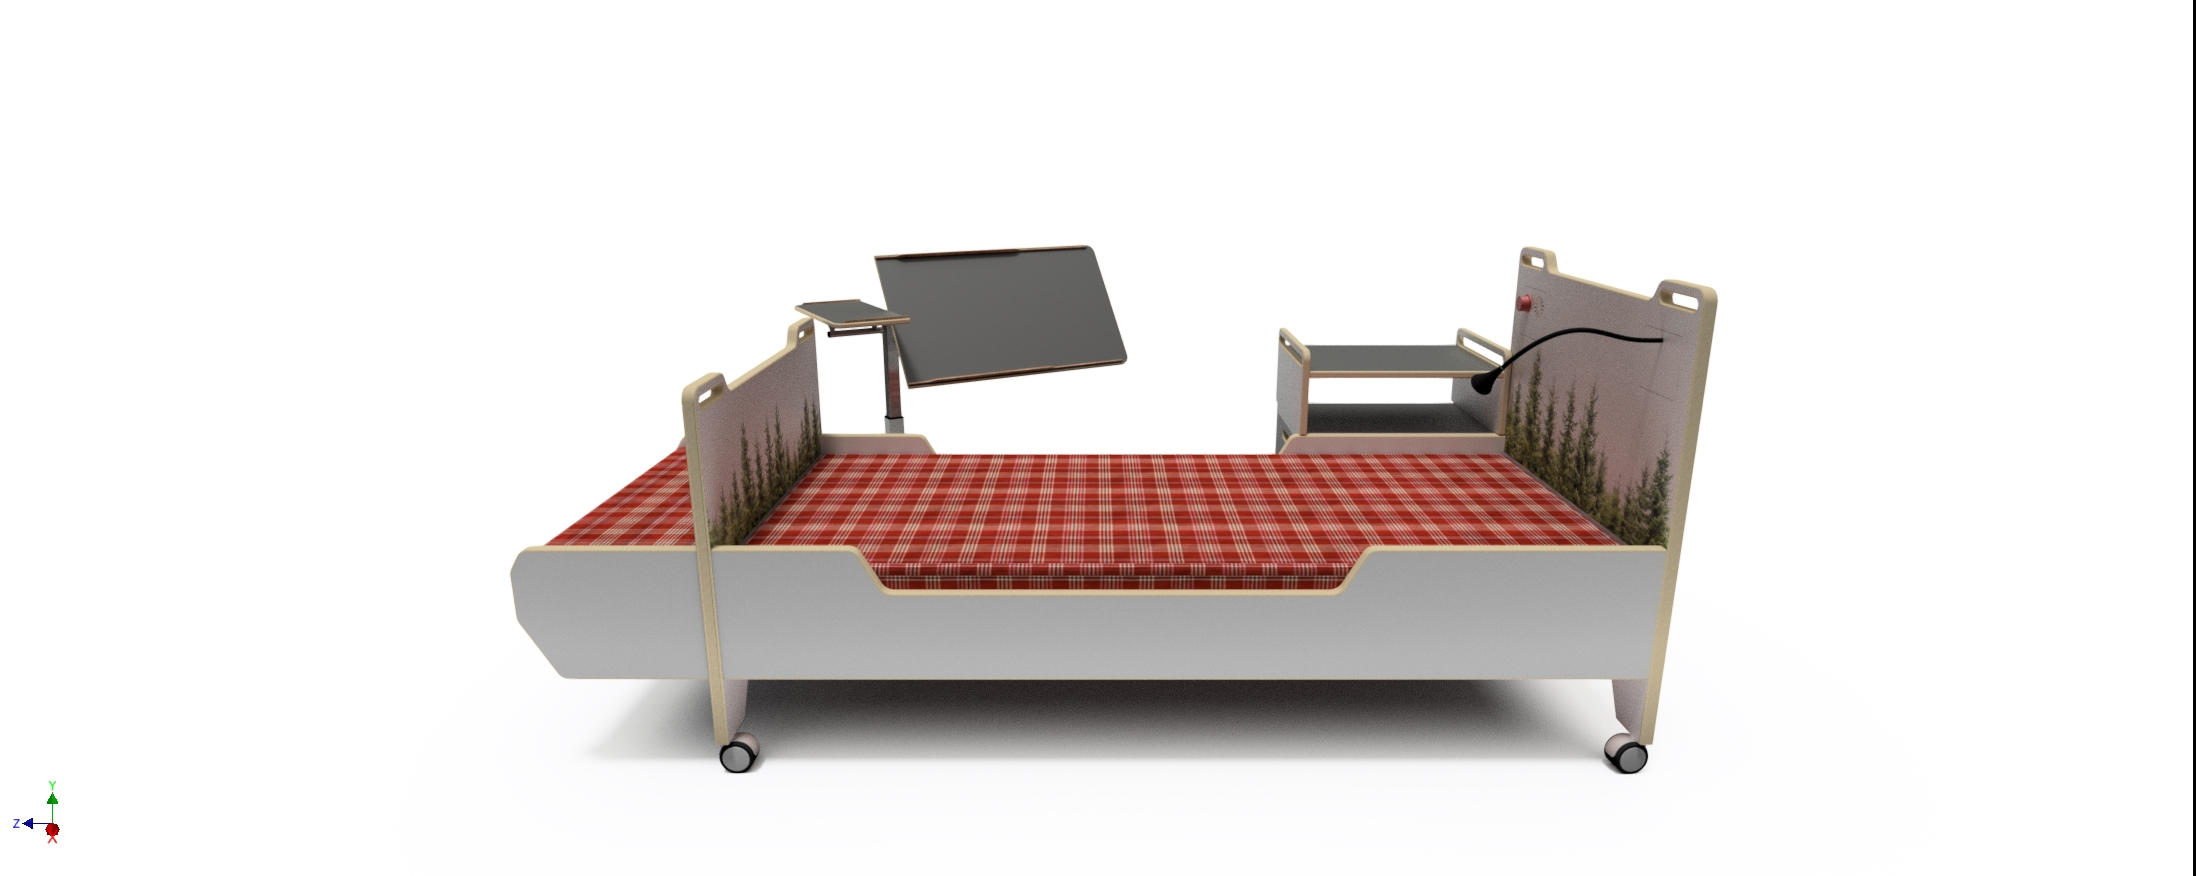 The experience story of old peoples bed